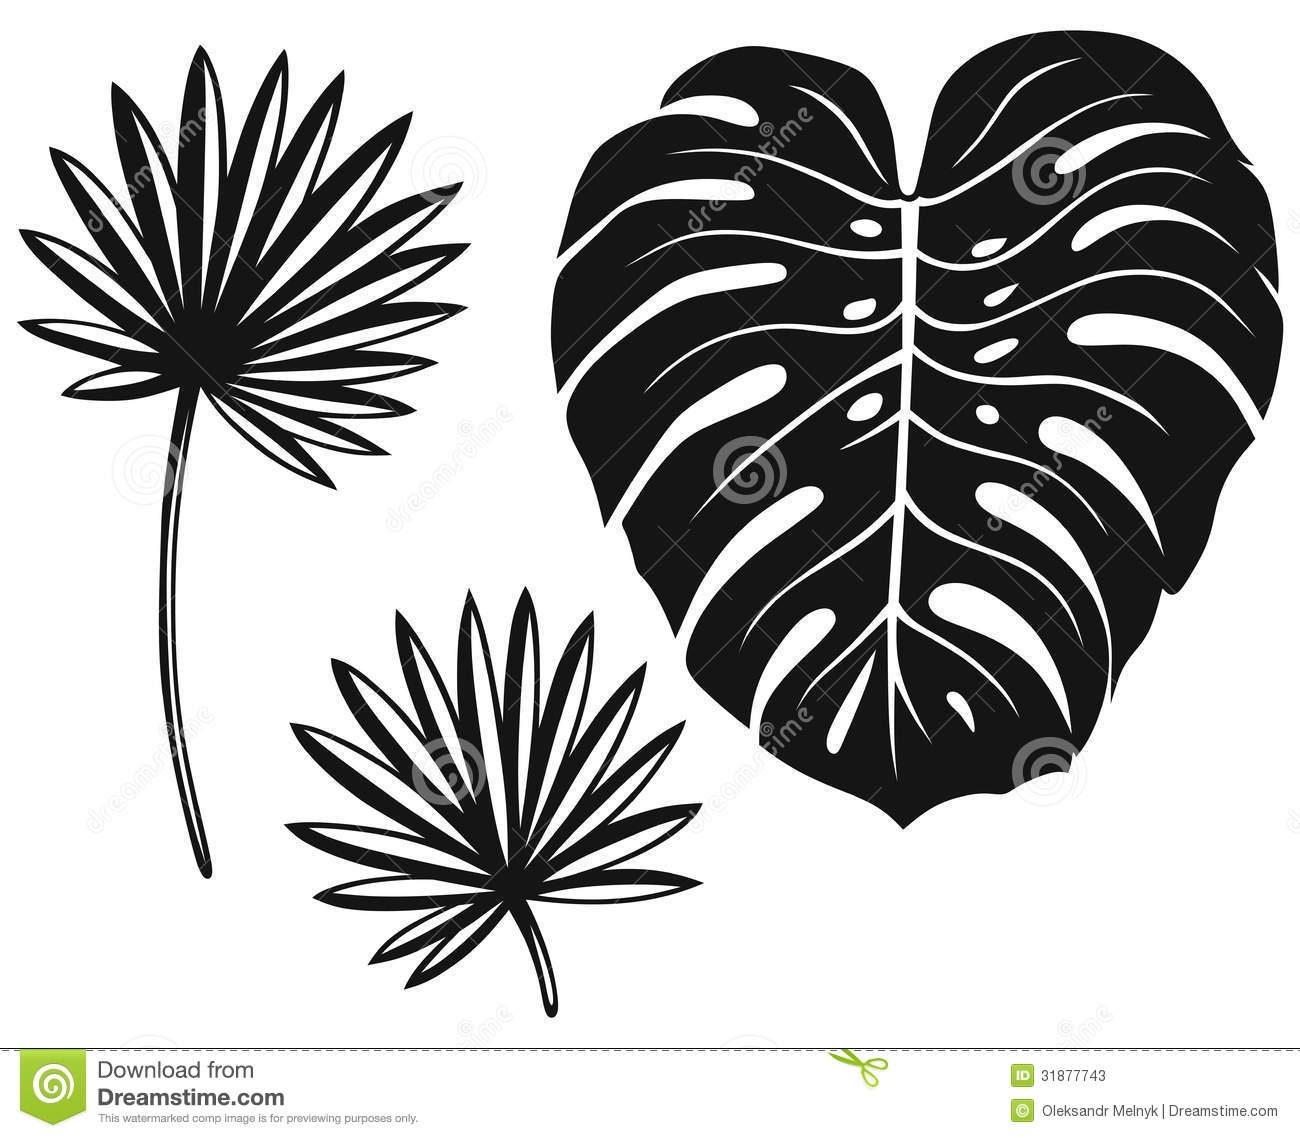 Palm leaf clipart black and white.